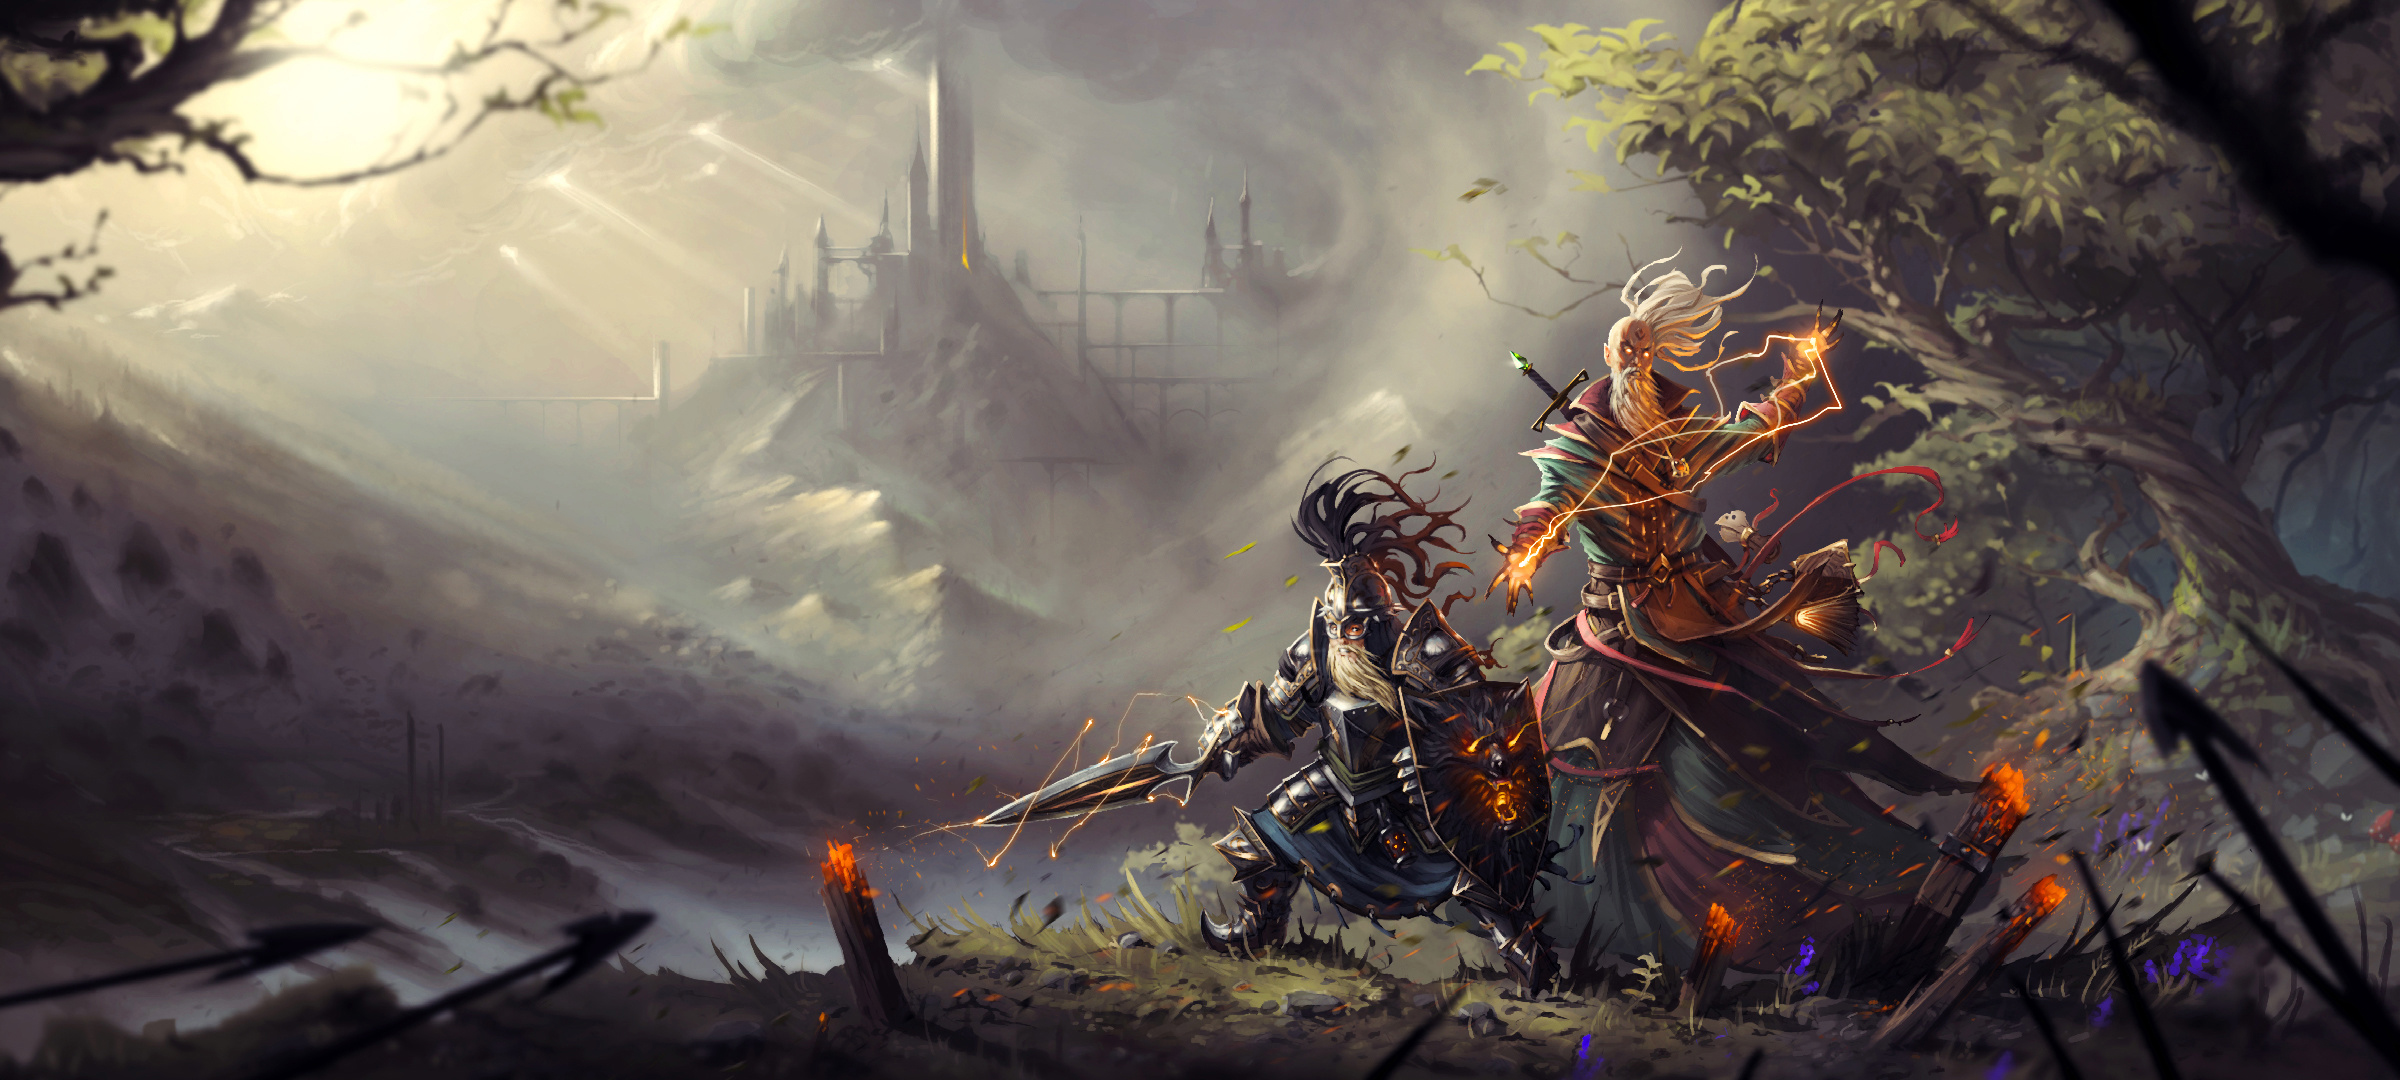 11 Divinity: Original Sin II HD Wallpapers